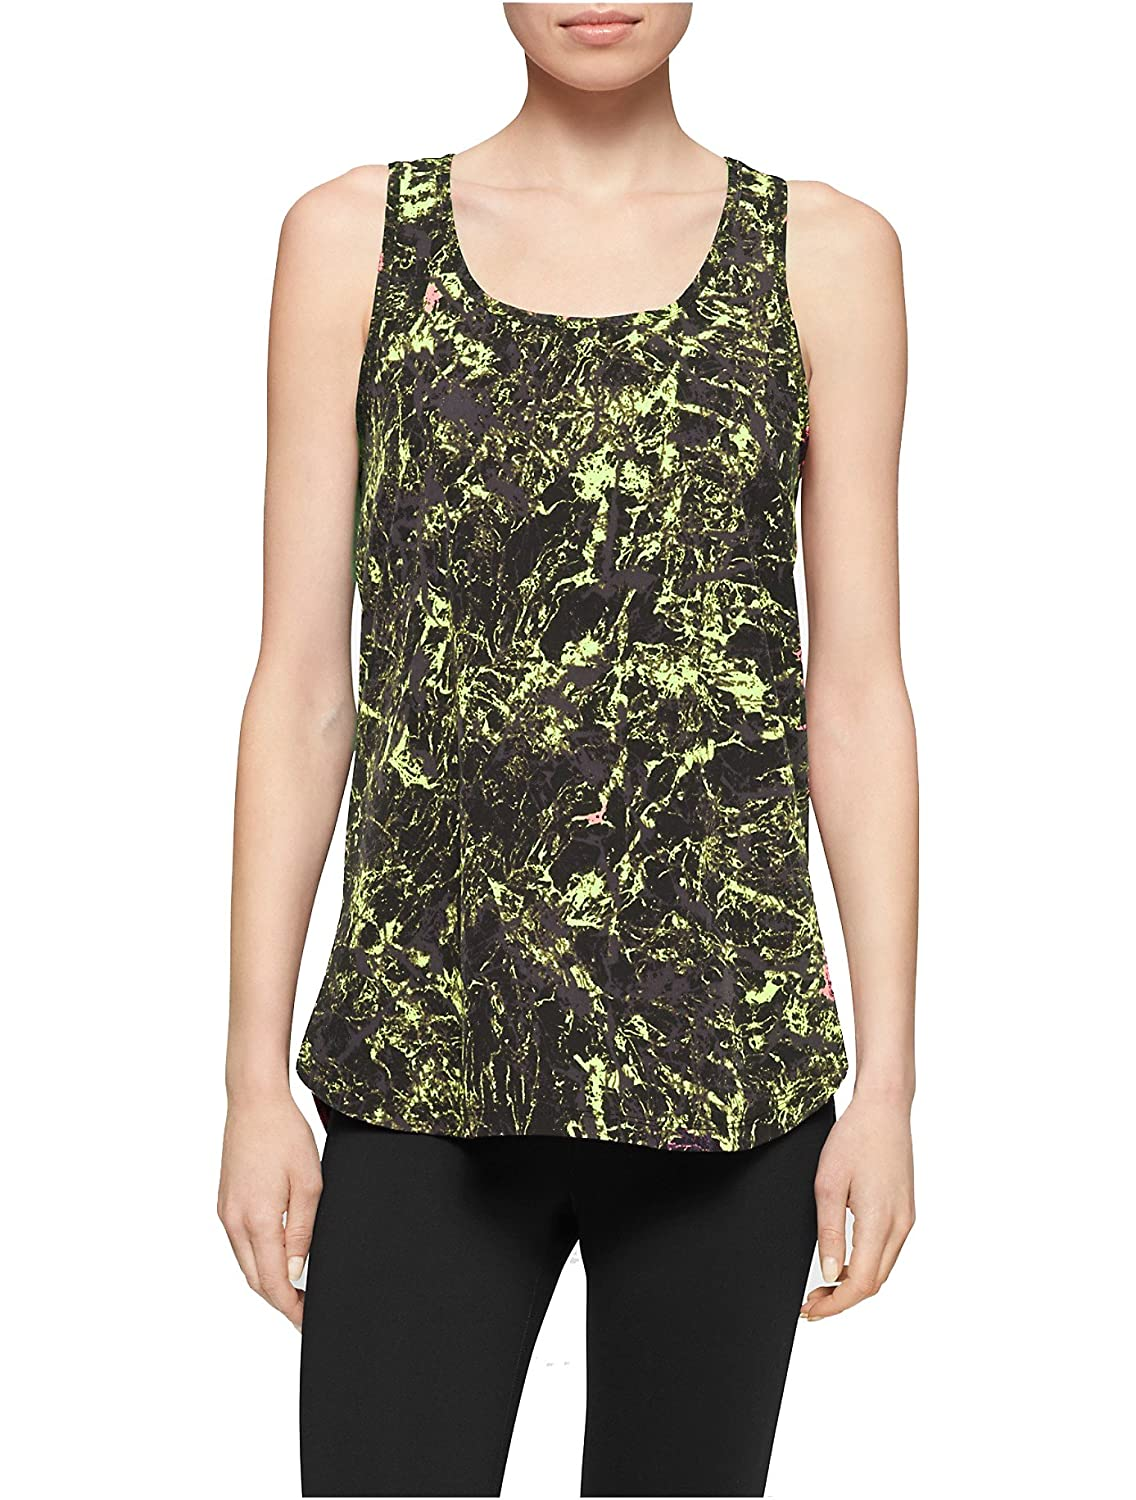 Calvin Klein High-low Racerback Tank Top Yellow/Black X-Large